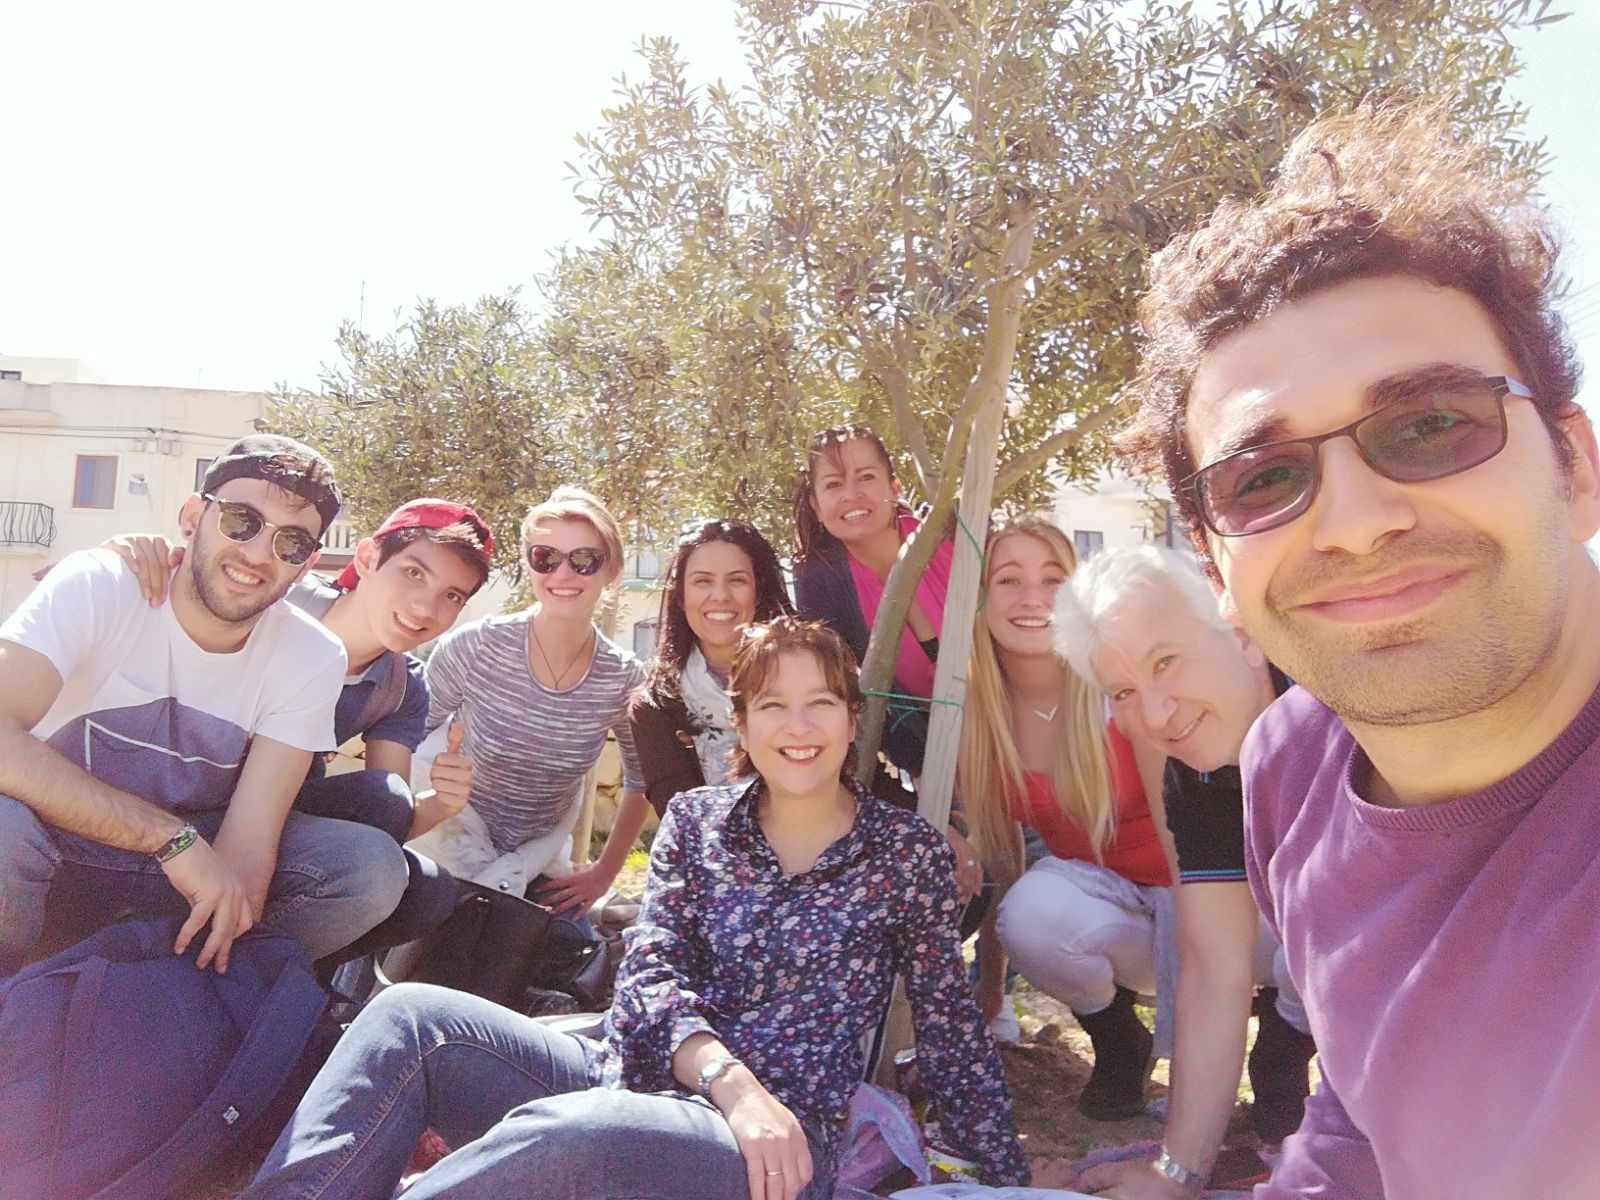 Intensive English lessons Malta. Gateway School of English GSE Photos - Outdoor English classes at the Olive Grove in San Gwann